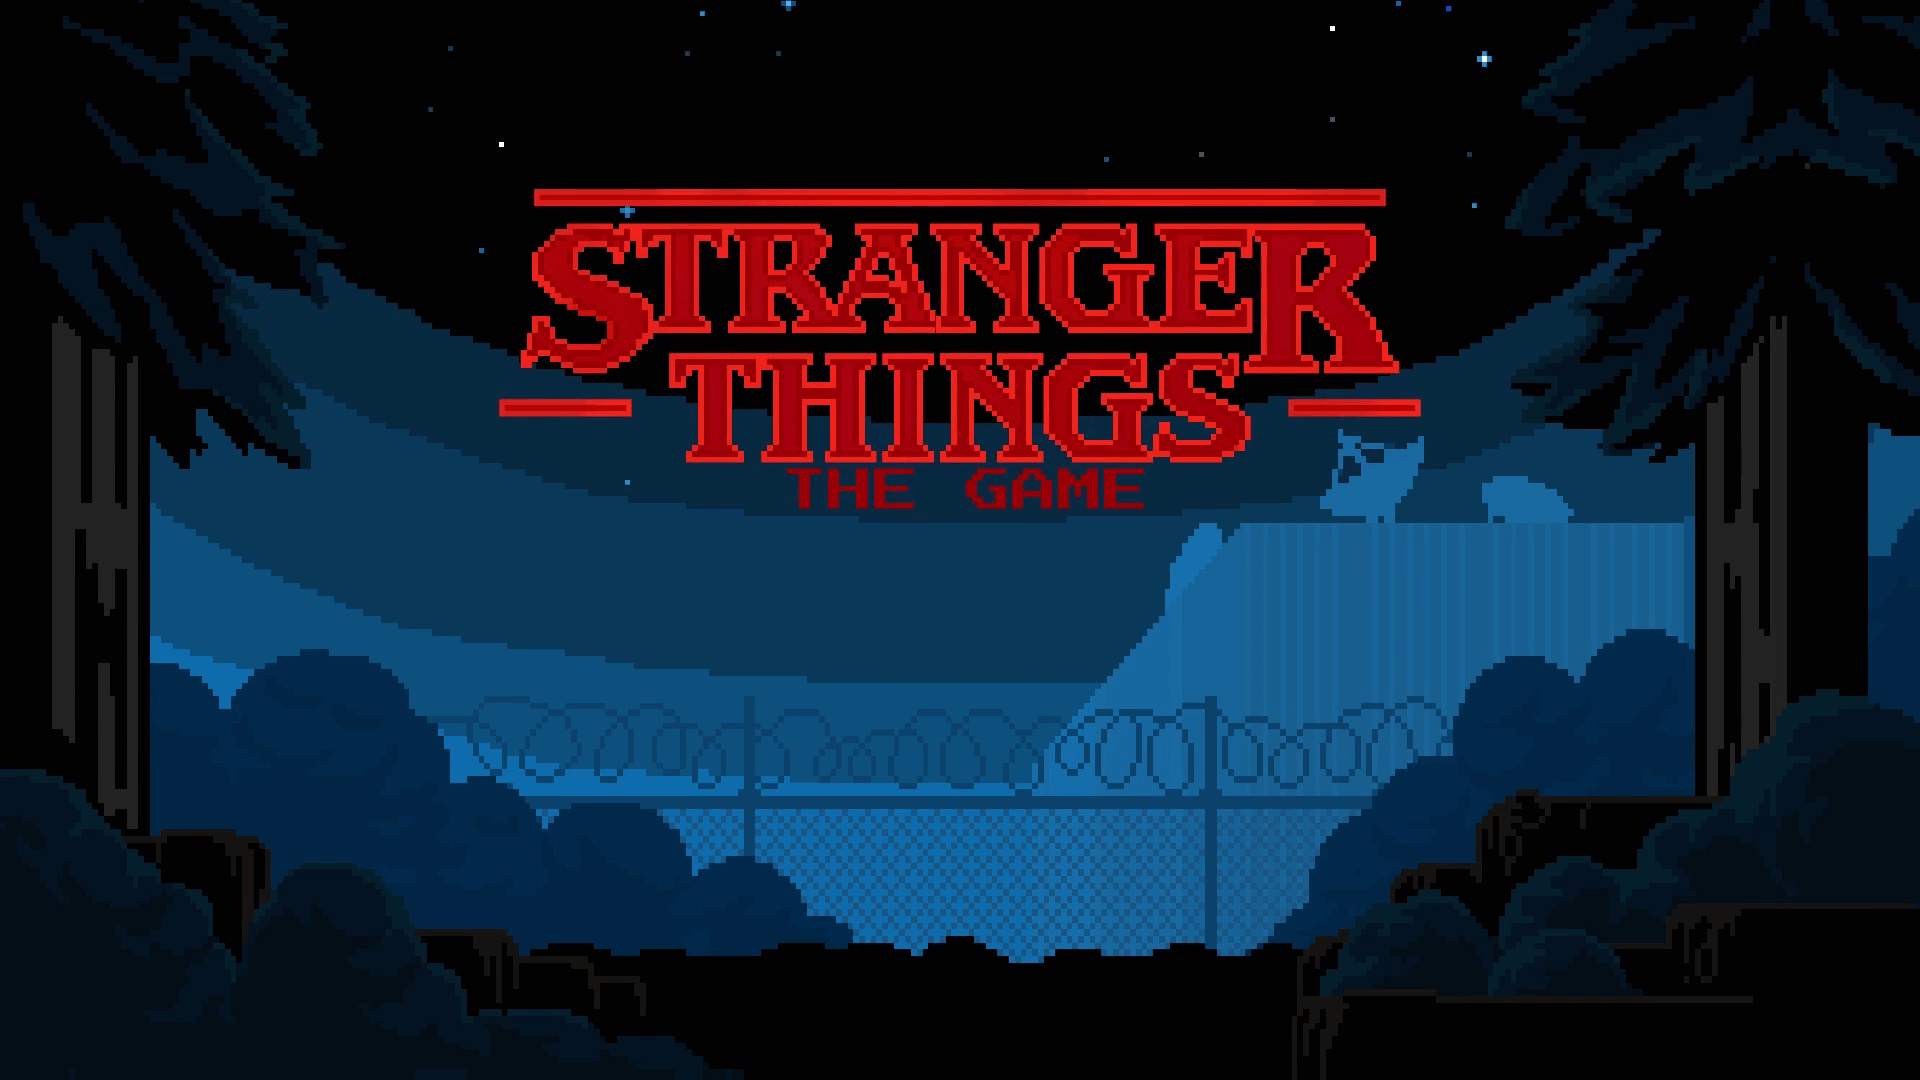 Stranger Things 3 The Game Wallpapers Wallpaper Cave